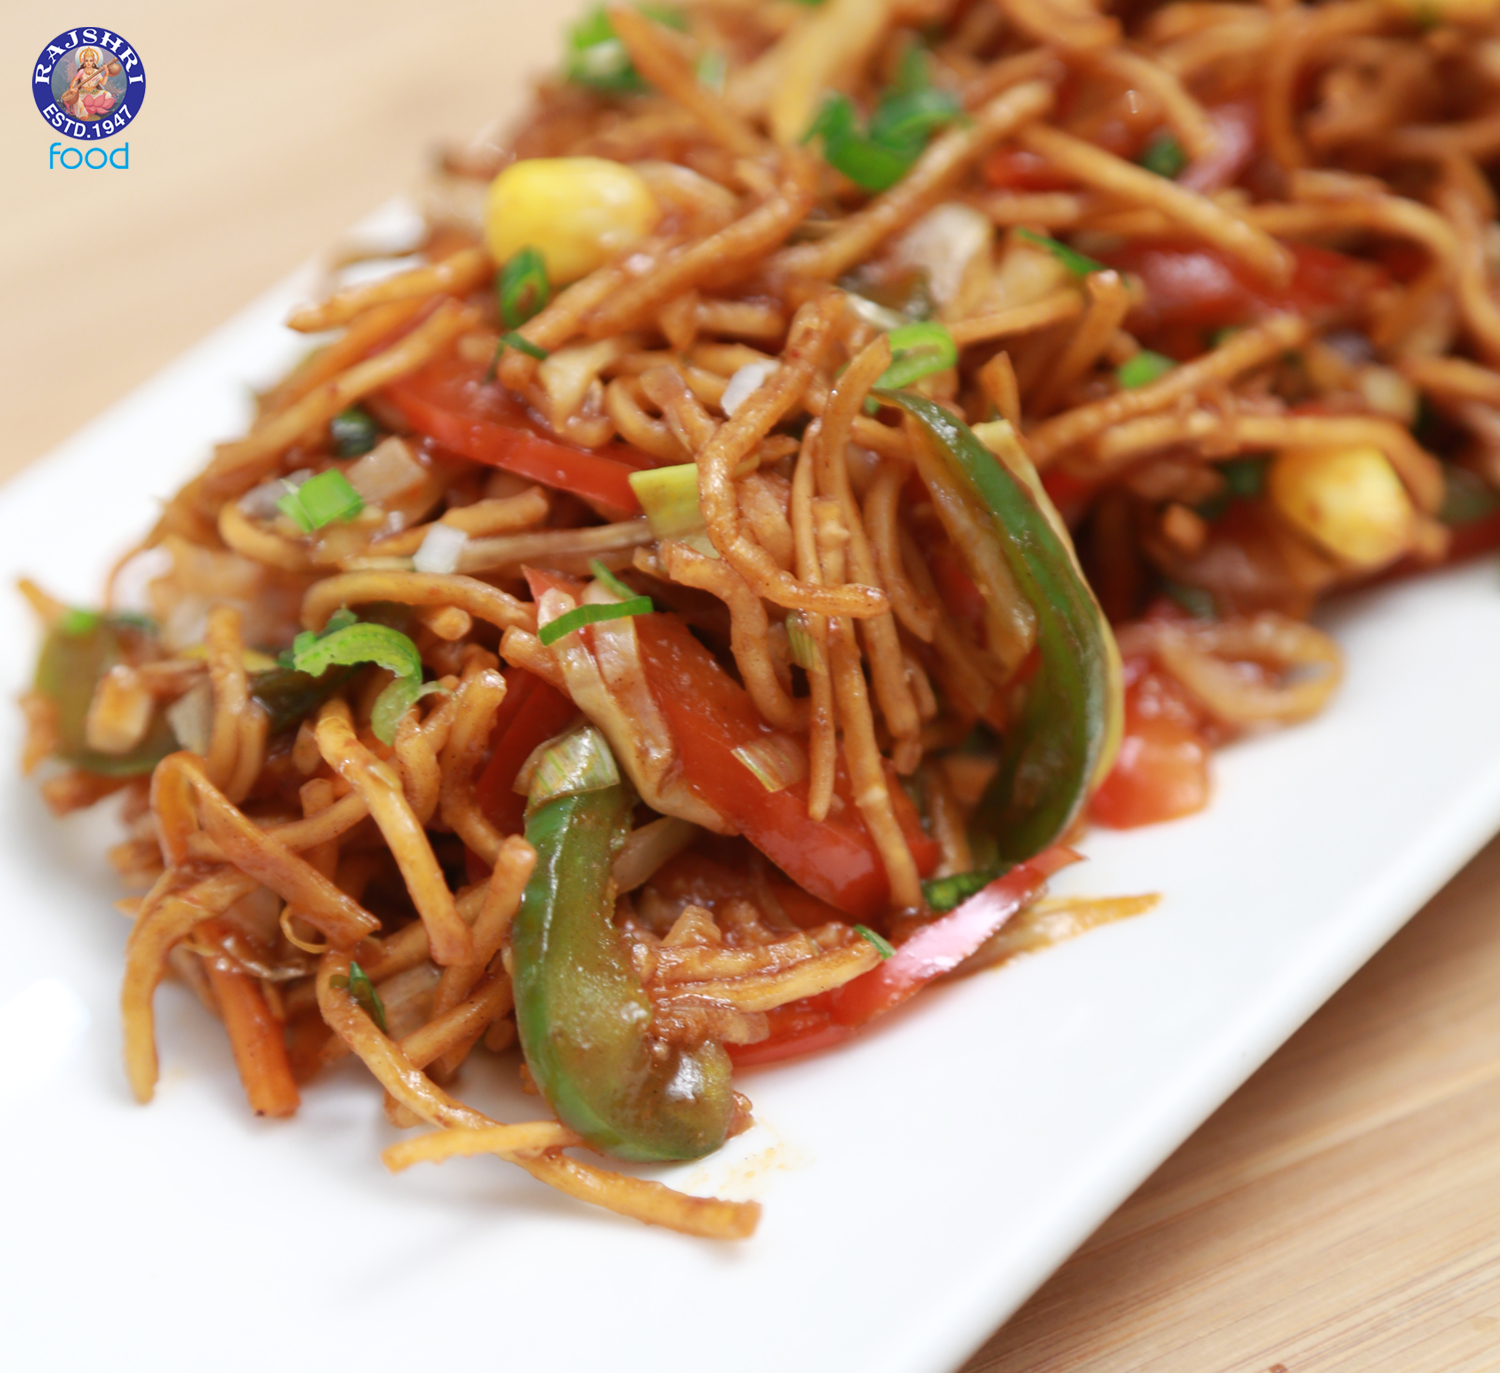 Chinese bhel indian fast food recipe vegetarian snack recipe chinese bhel indian fast food recipe vegetarian snack recipe by ruchi bharani forumfinder Gallery